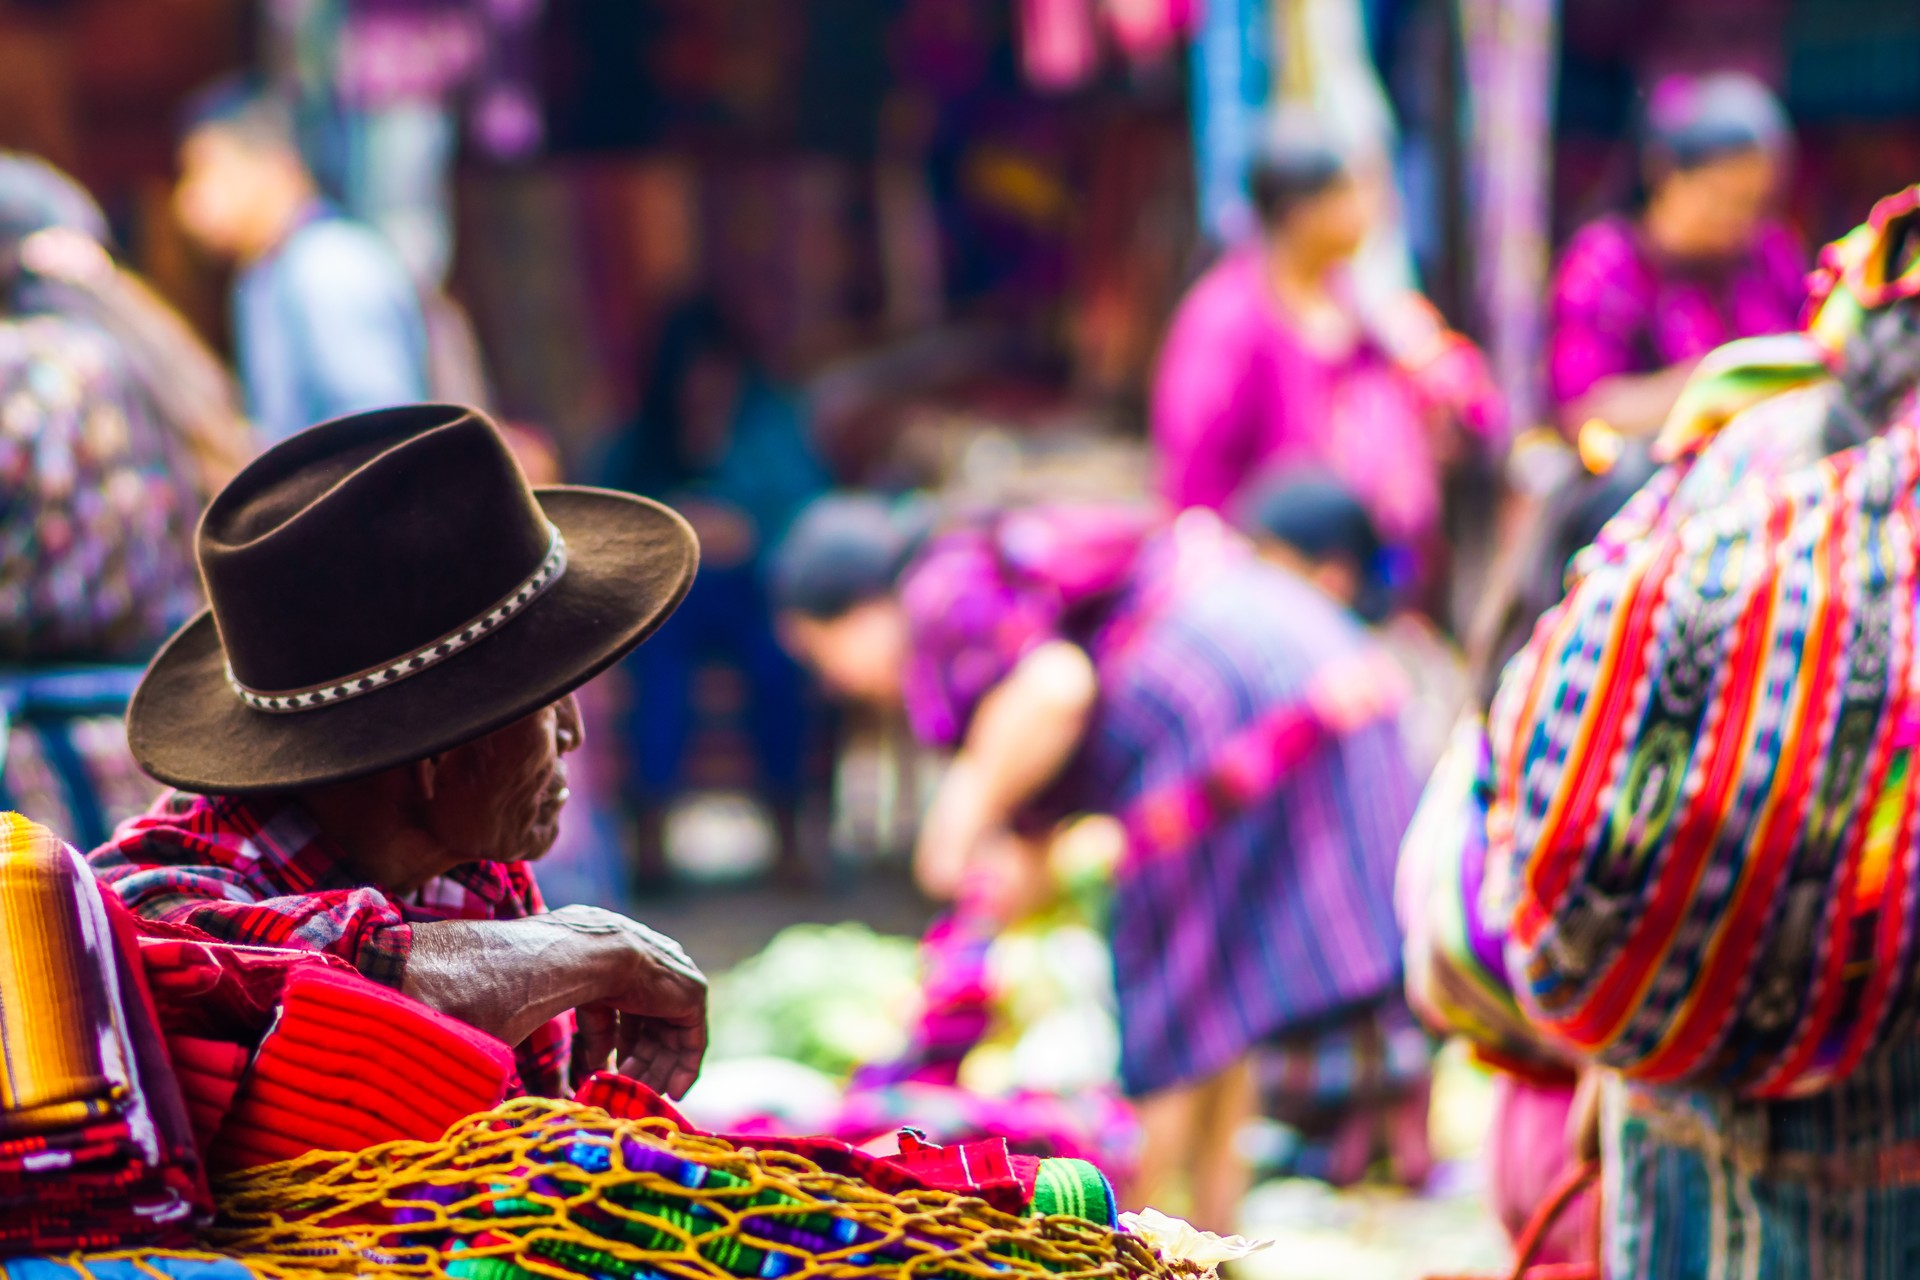 A Mayan man at a market near Lake Atitlan, Guatemala